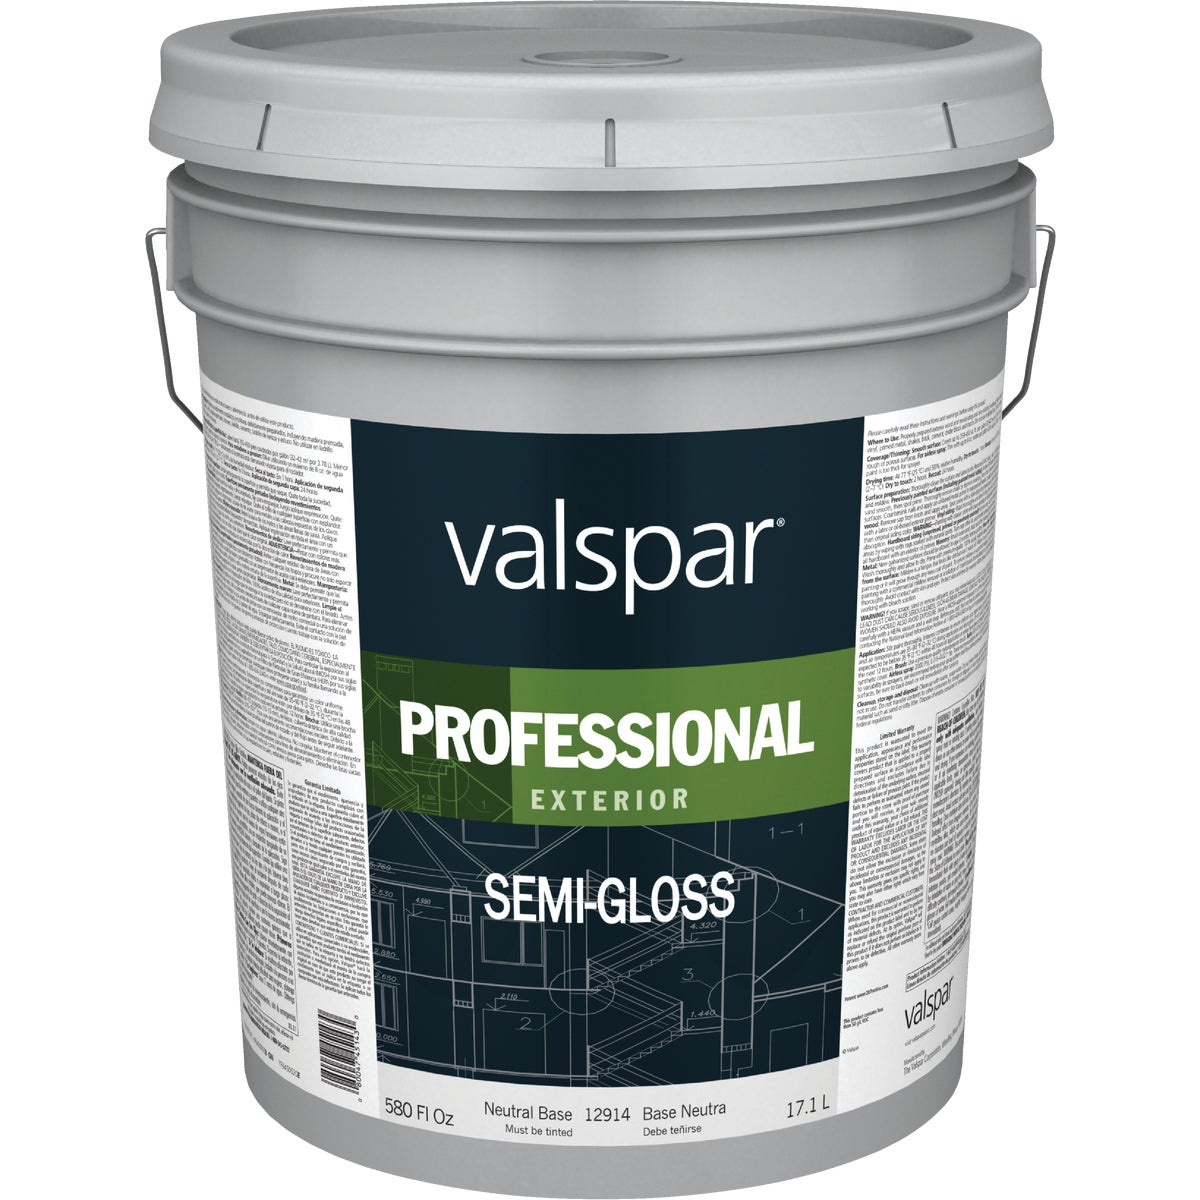 EXT S/G NEUT BASE PAINT - 045.0012914.008 by Valspar Corp